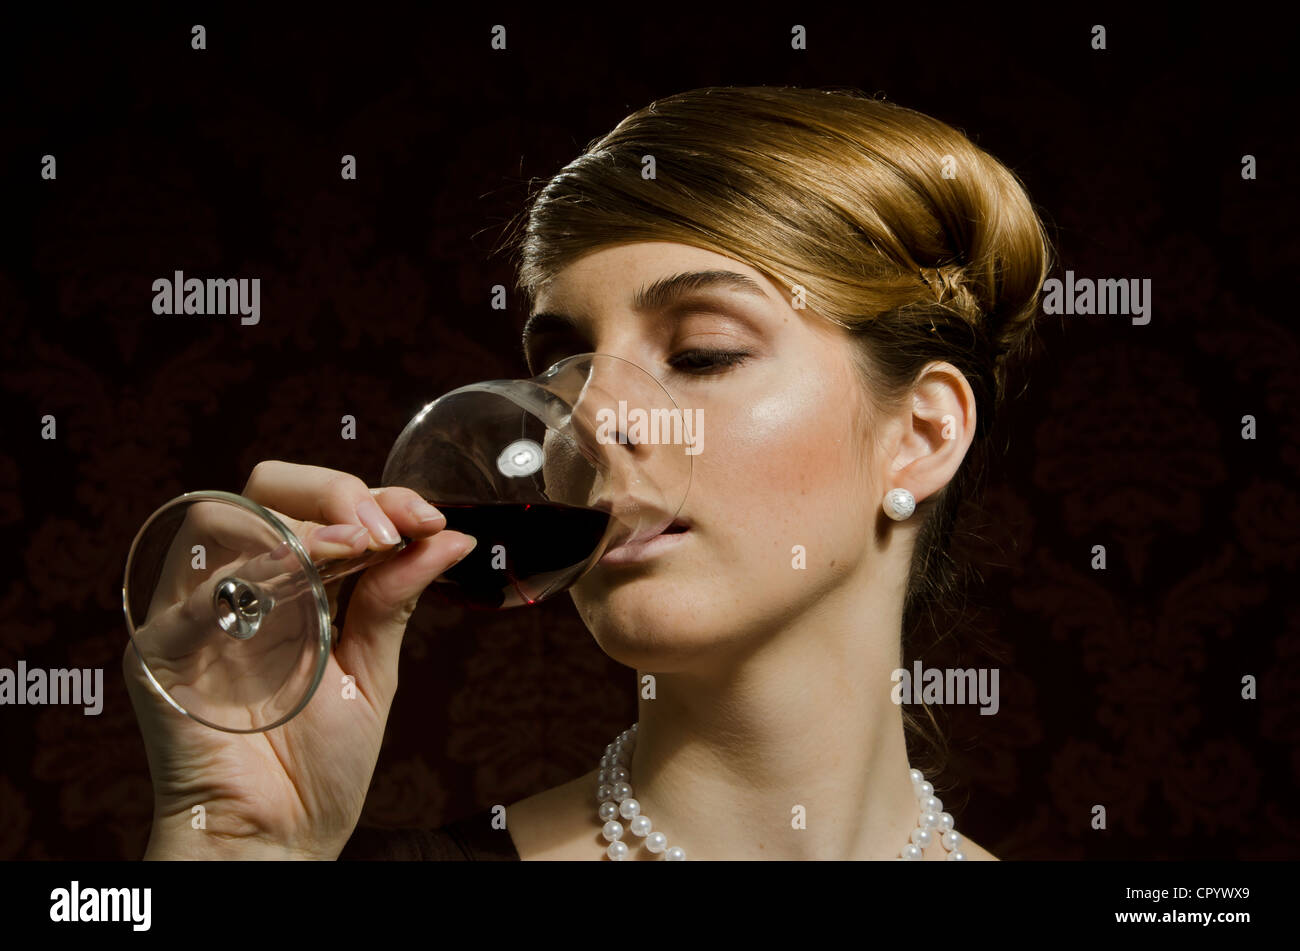 Stock Photo  Young Woman Wearing A Pearl Necklace And Pearl Earrings,  Drinking Red Wine In A Wine Glass